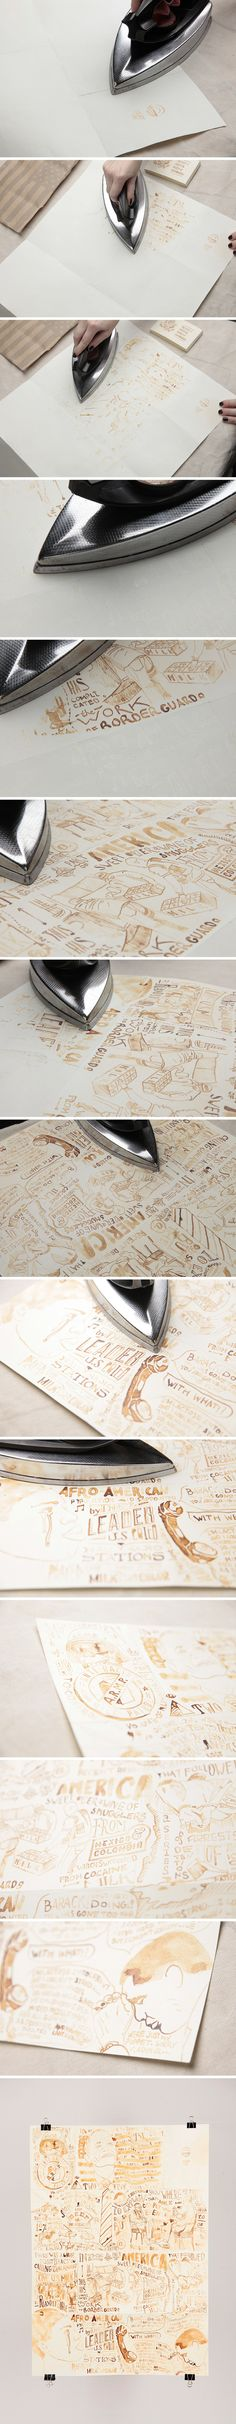 Draw with milk - draw with milk on paper, let dry for 30 minutes, and then iron to reveal HOW COOL!